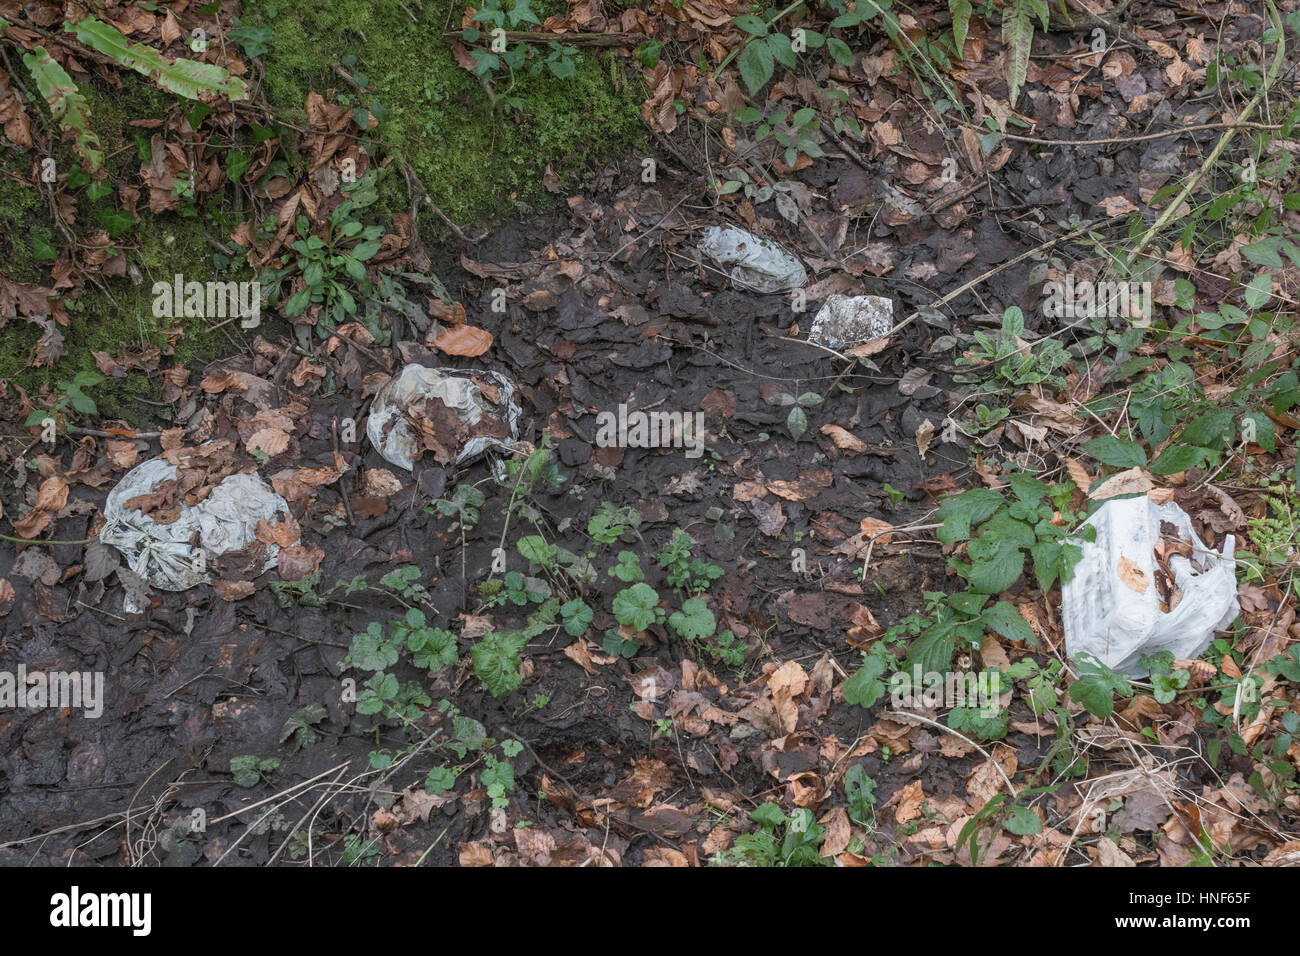 Environmental pollution in form or roadside and hedgerow rubbish discarded by the public. Plastic waste, war on - Stock Image